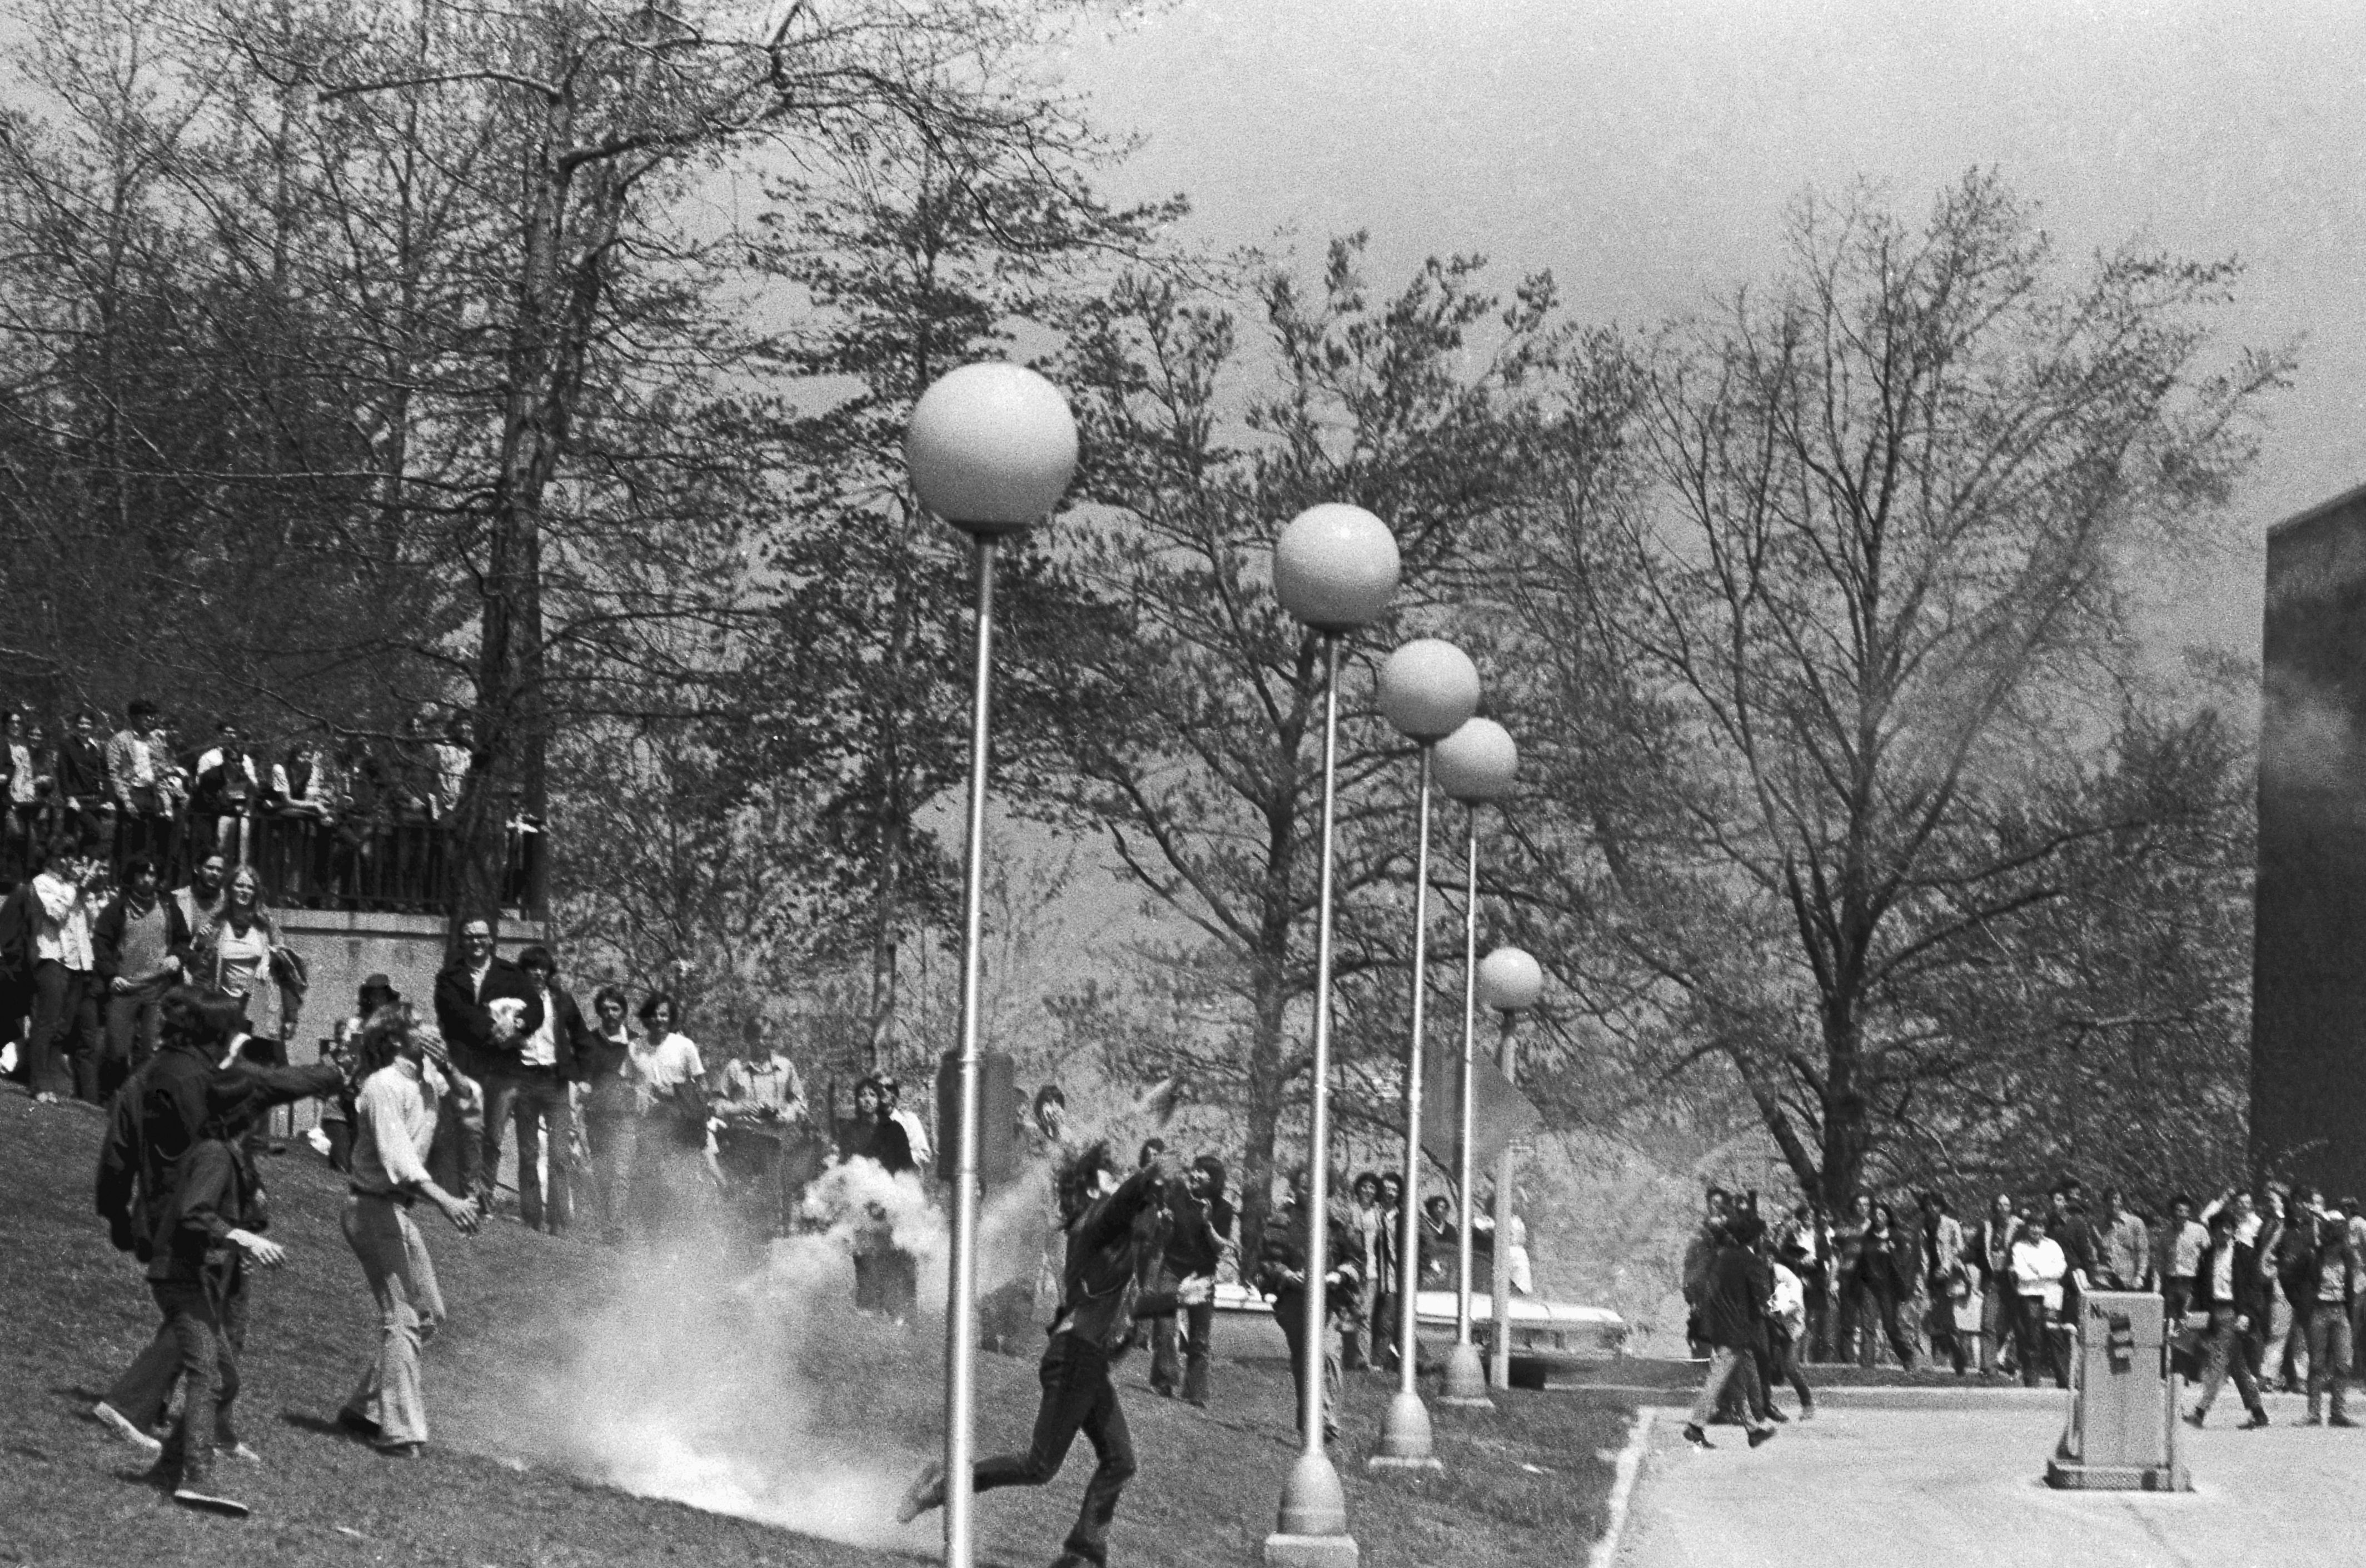 Hundreds of students at Kent State staged a demonstration in protest against the Nixon administration's expansion of the Vietnam War into Cambodia on May 4, 1970.